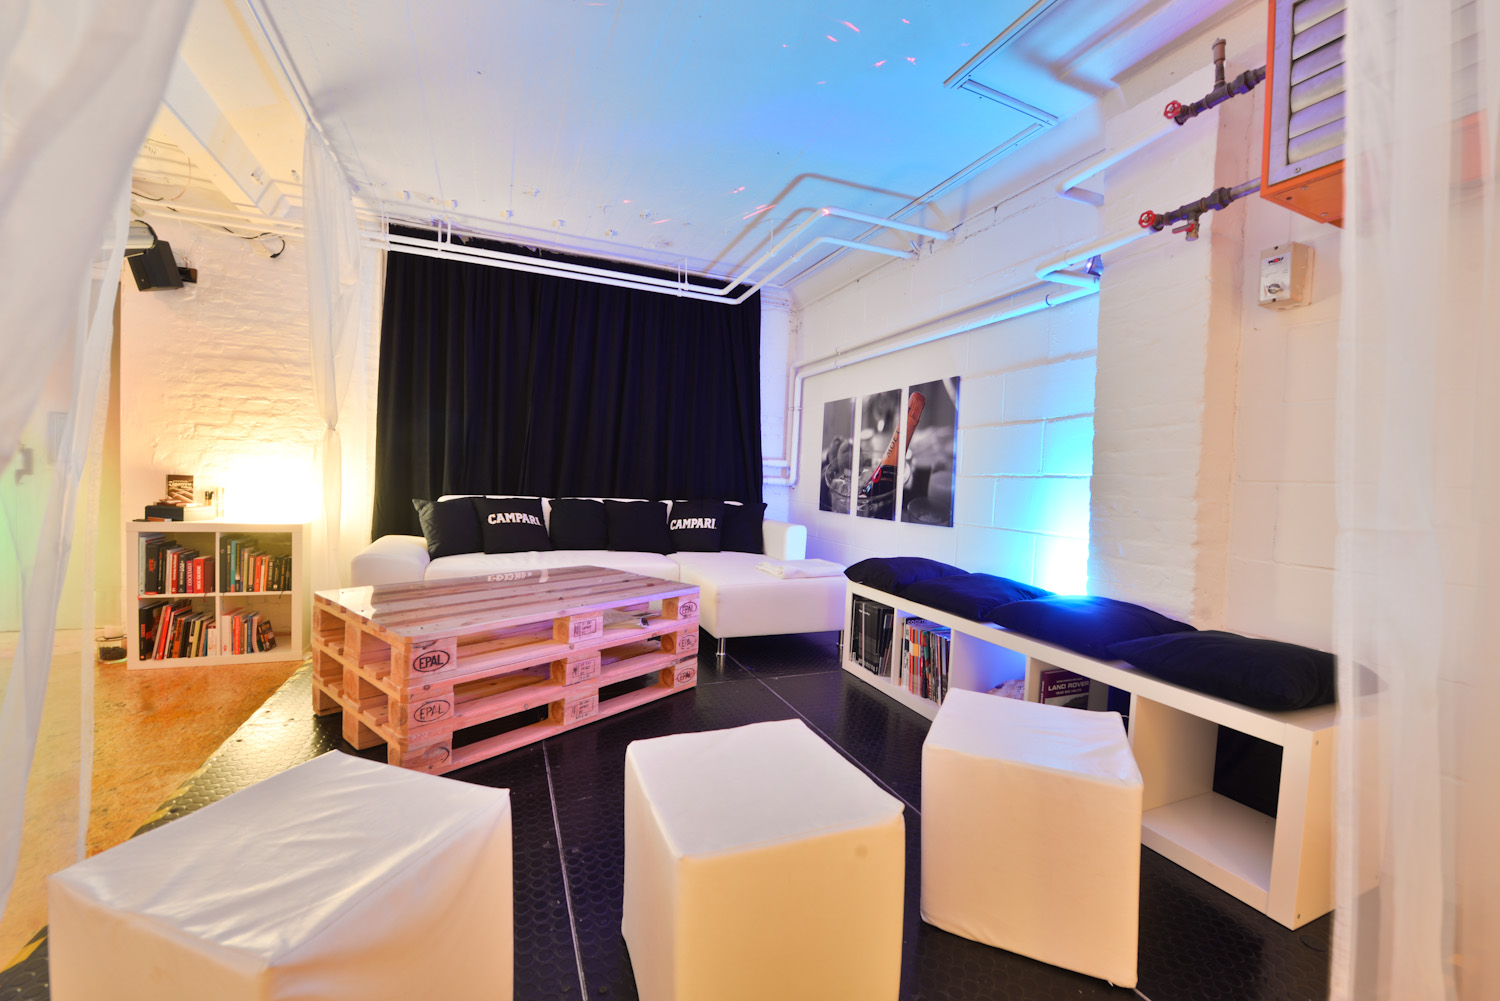 Eventlocation Frankfurt - Parties und Incentives